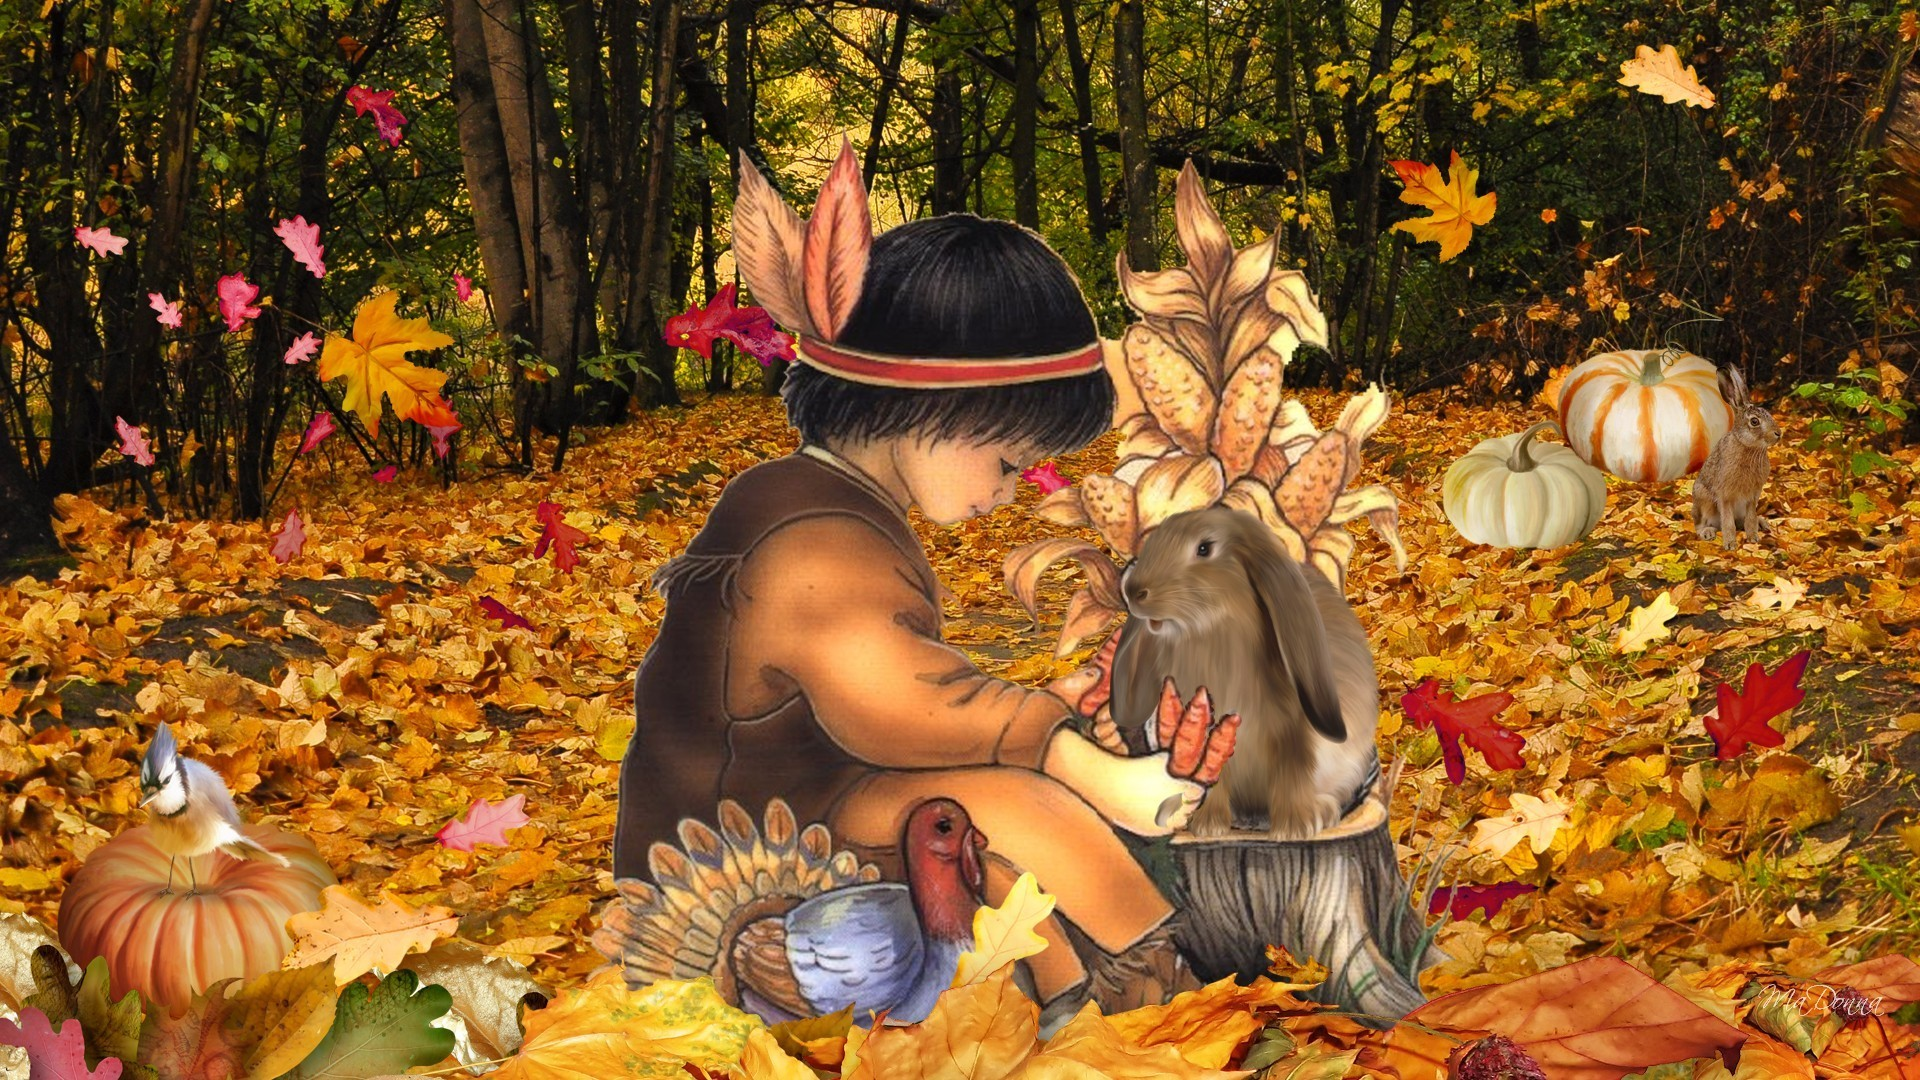 Rabbits Tag – Thanksgiving Forest Turkey Firefox Gourds American Leaves Fall  Autumn Pumpkins Woods Boy Native